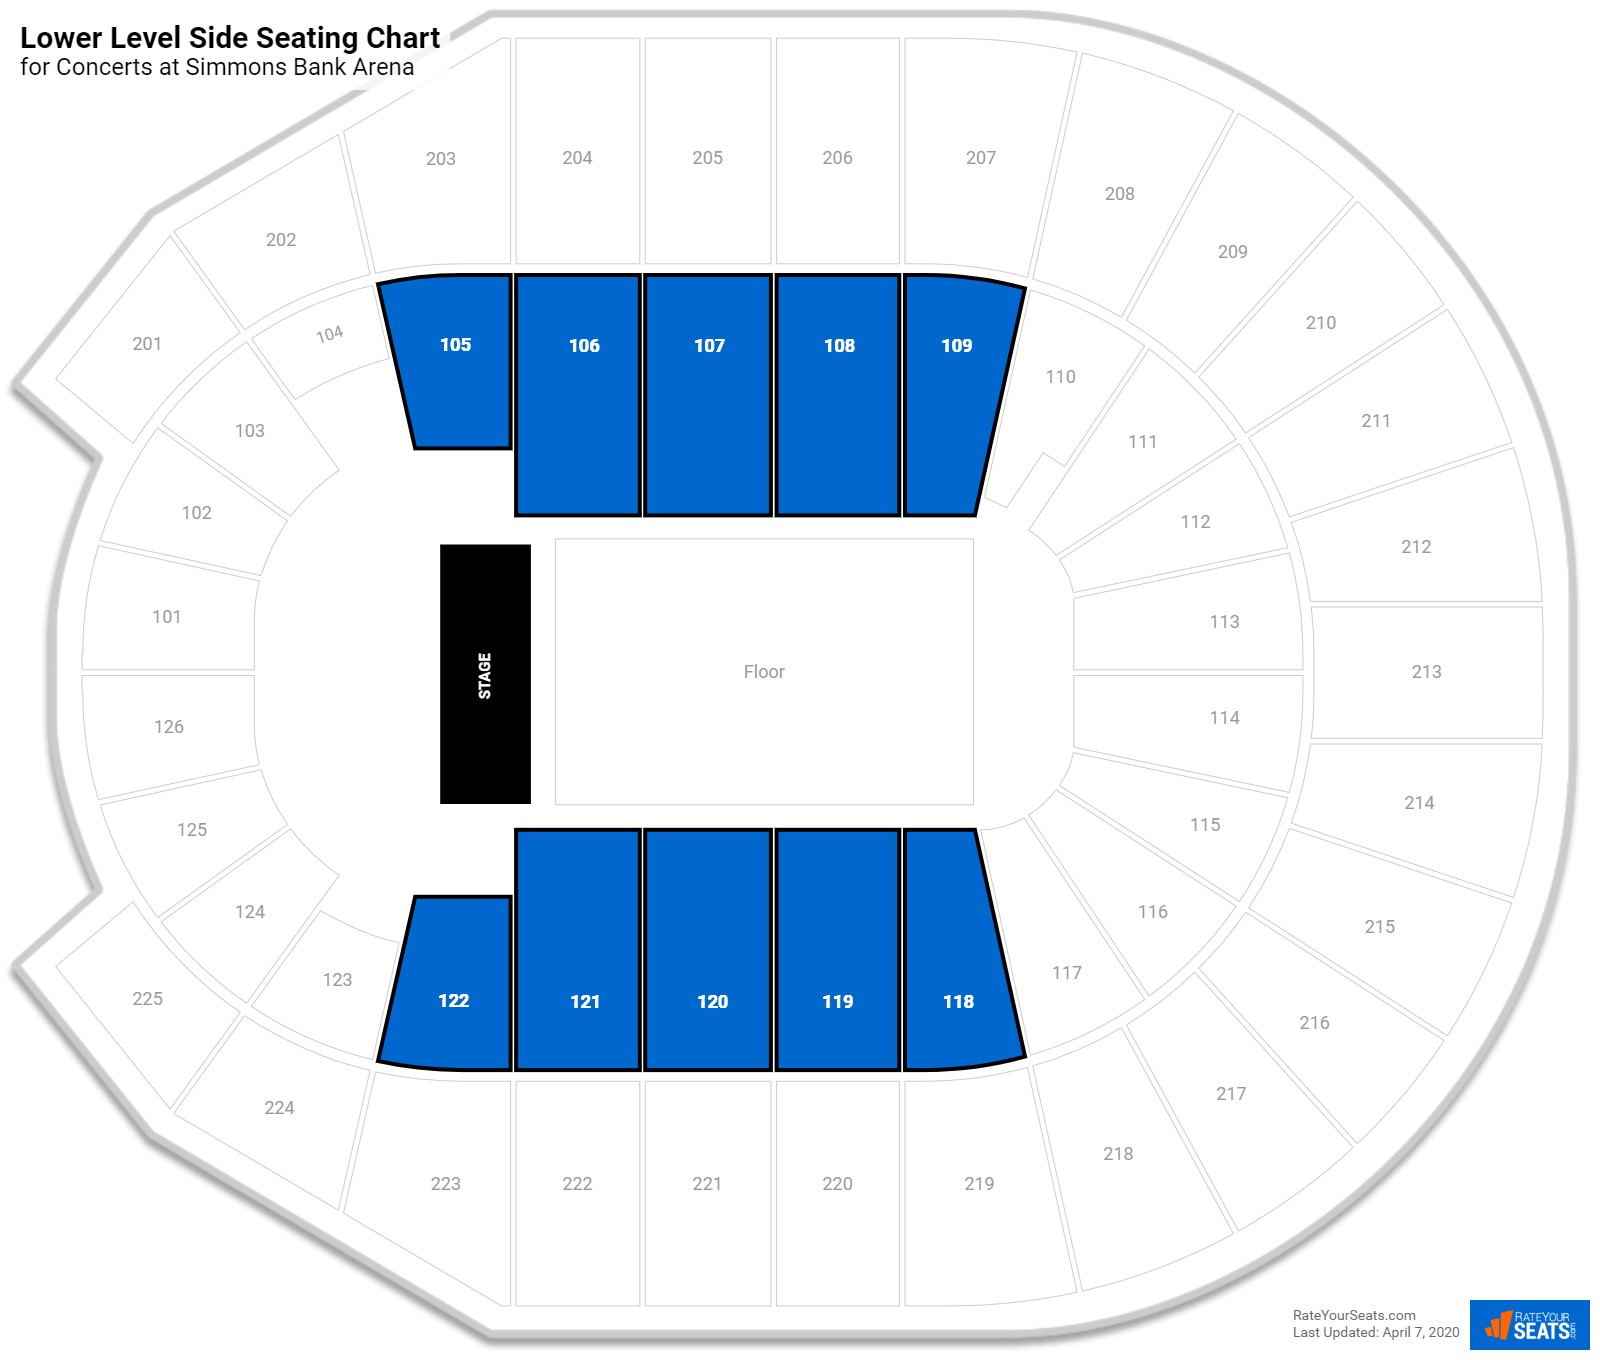 Verizon Arena Lower Level Side Seating Chart